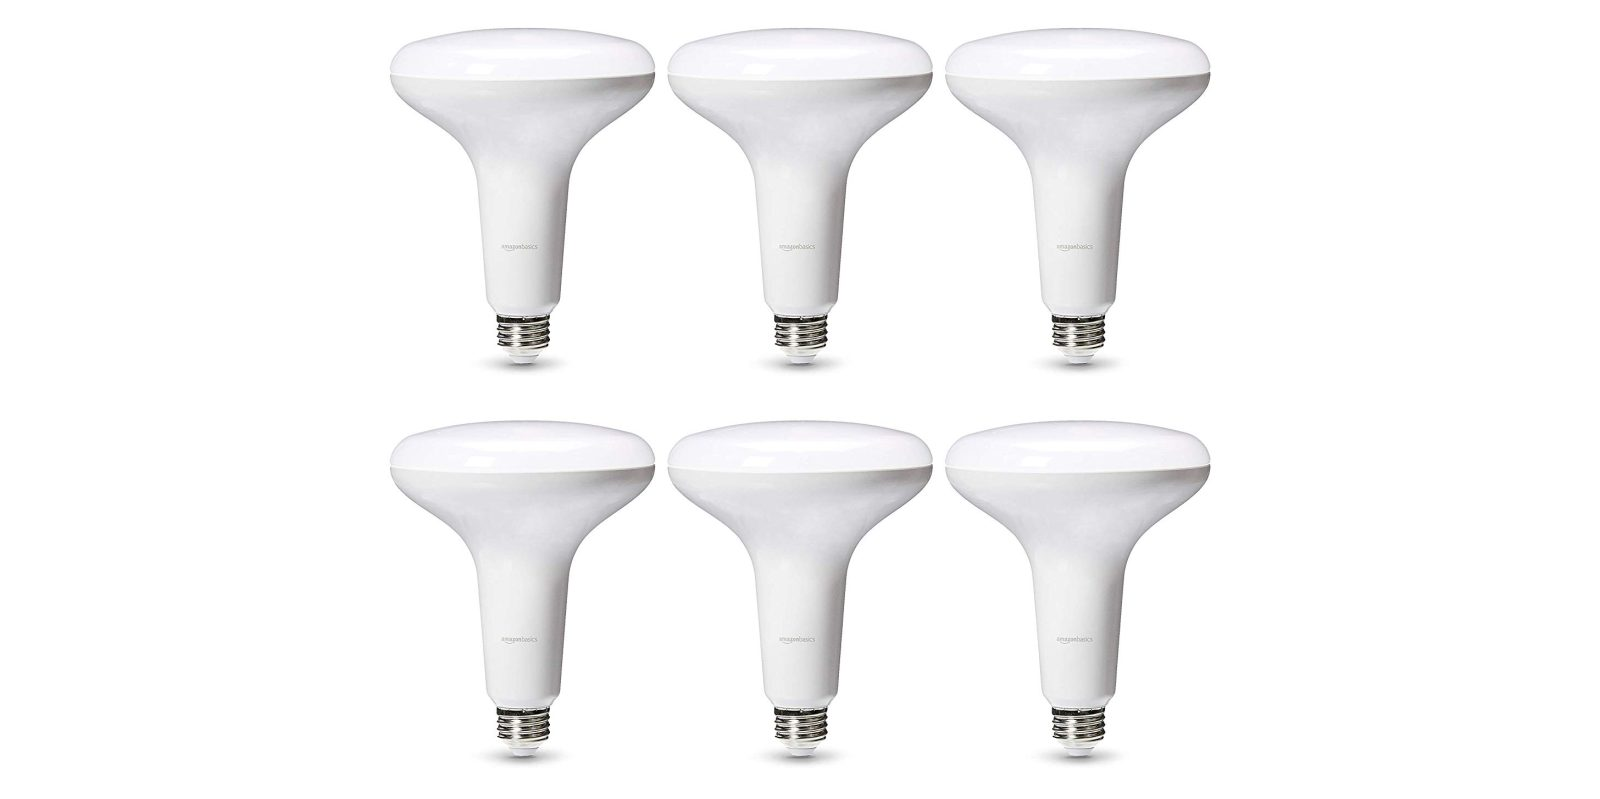 Get a 6-pack of 75W Dimmable BR40 LED Lights for $33, more in today's Green Deals